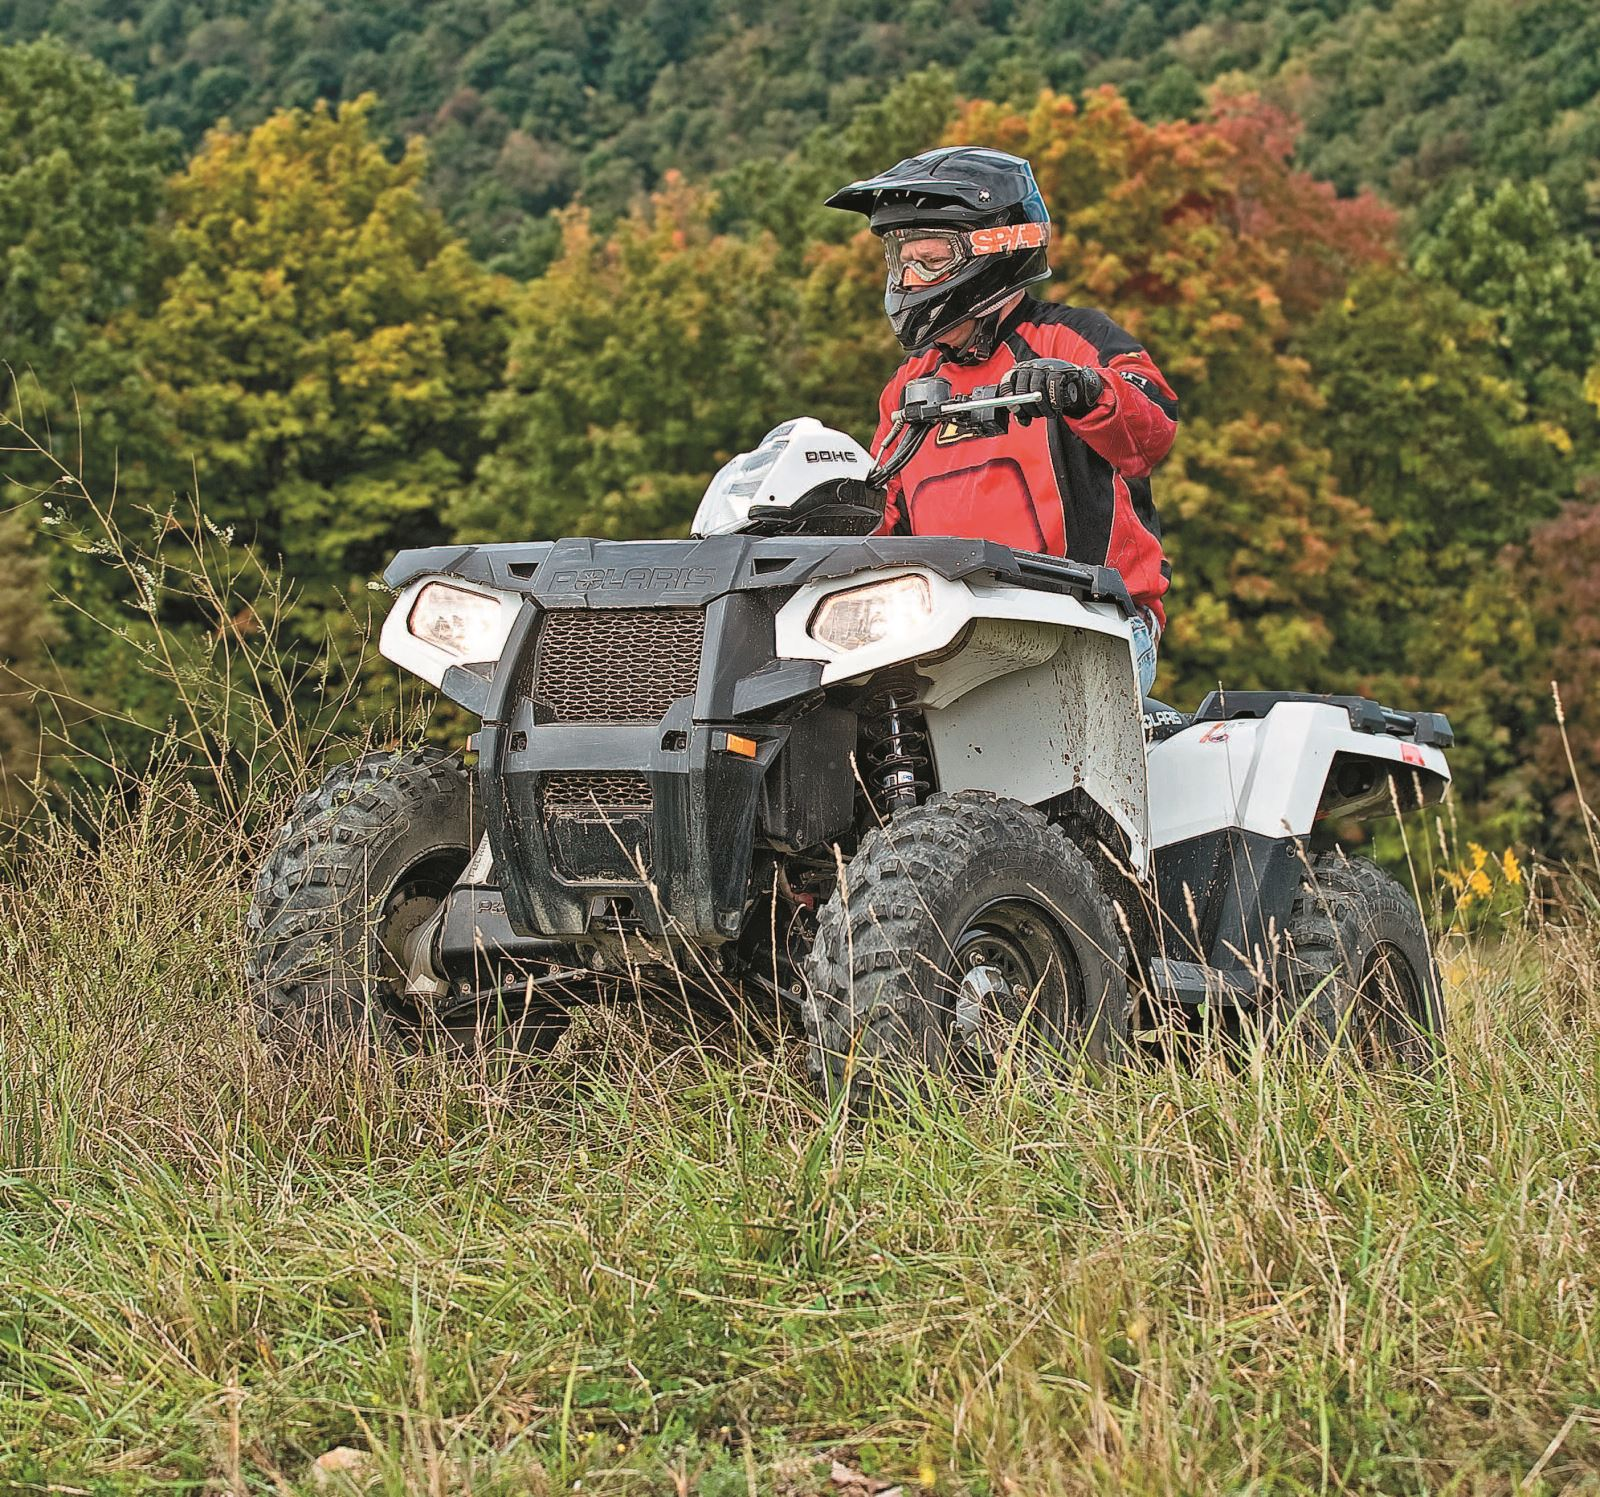 Polaris Hits Home Run New 570 ATV, Side-By-Side   Dirt Toys